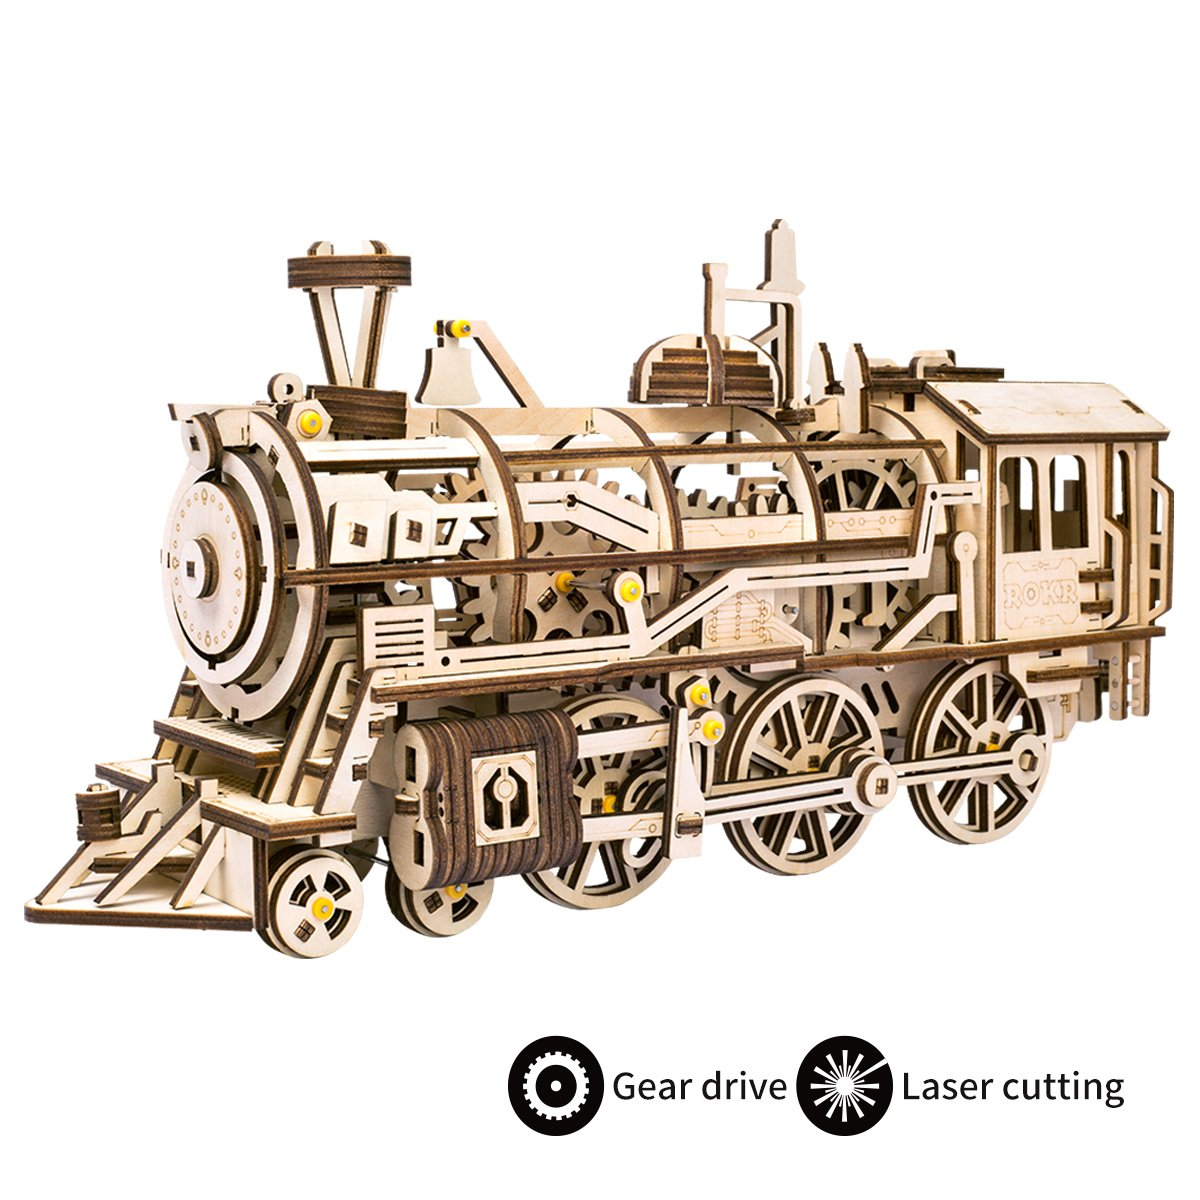 ROBOTIME 3D Assembly Wooden Puzzle Laser-Cut Locomotive Kit Mechanical Gears Toy Brain Teaser Games Best Birthday Gifts for Engineer Husband & Boyfriend & Teen Boys & Adults LK701